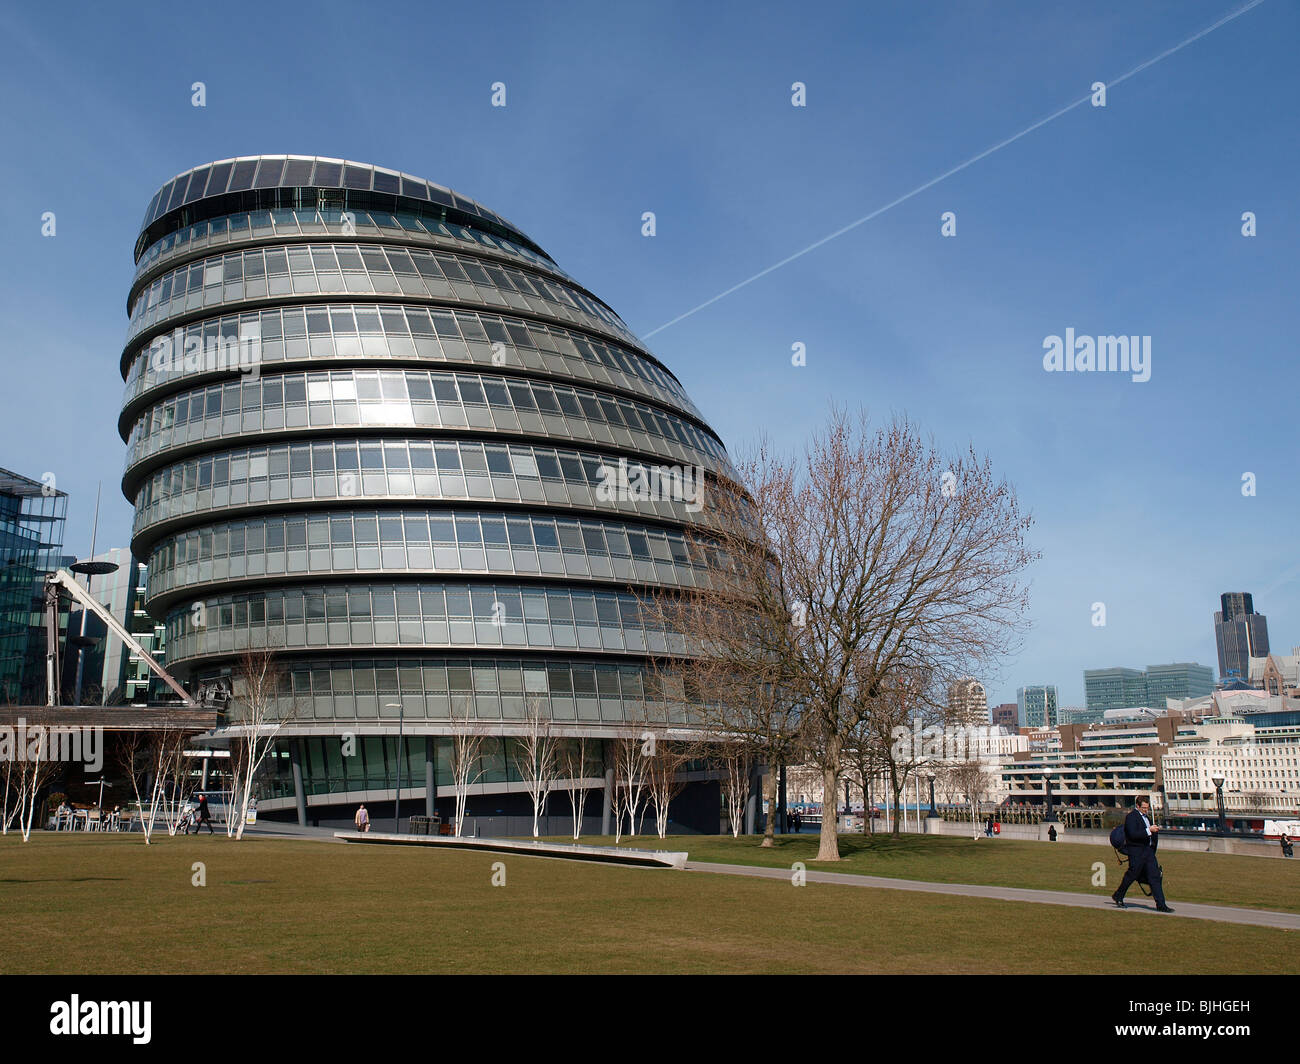 Greater London Authority, City Hall, The Queen's Walk, More London, London SE1 2AA - Stock Image